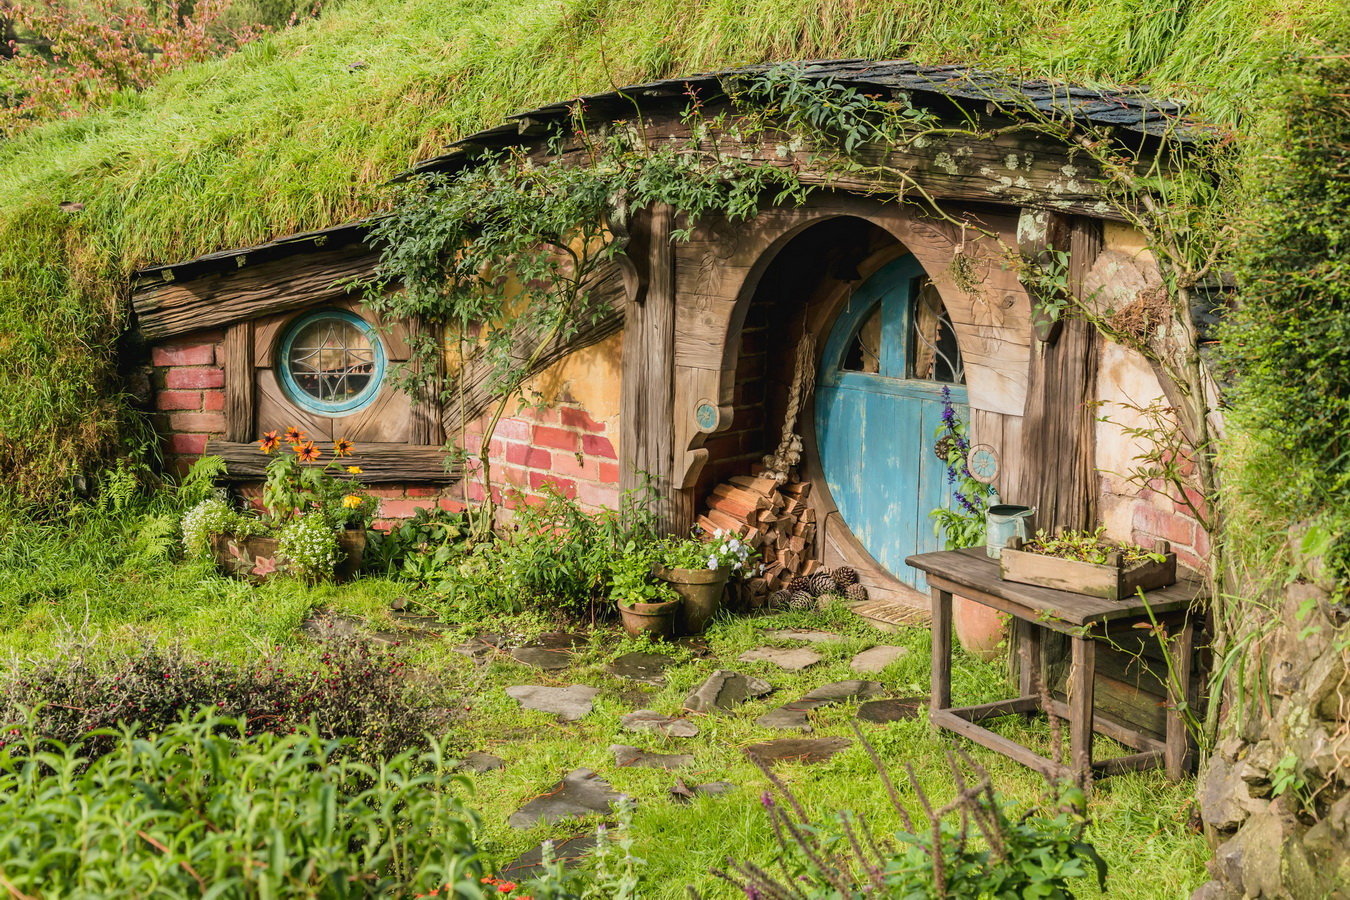 hill,The Hobbiton, The Shire,Хоббитшир, Удел, Хоббитания, Заселье, Край,Matamata, North Island ,New Zealand